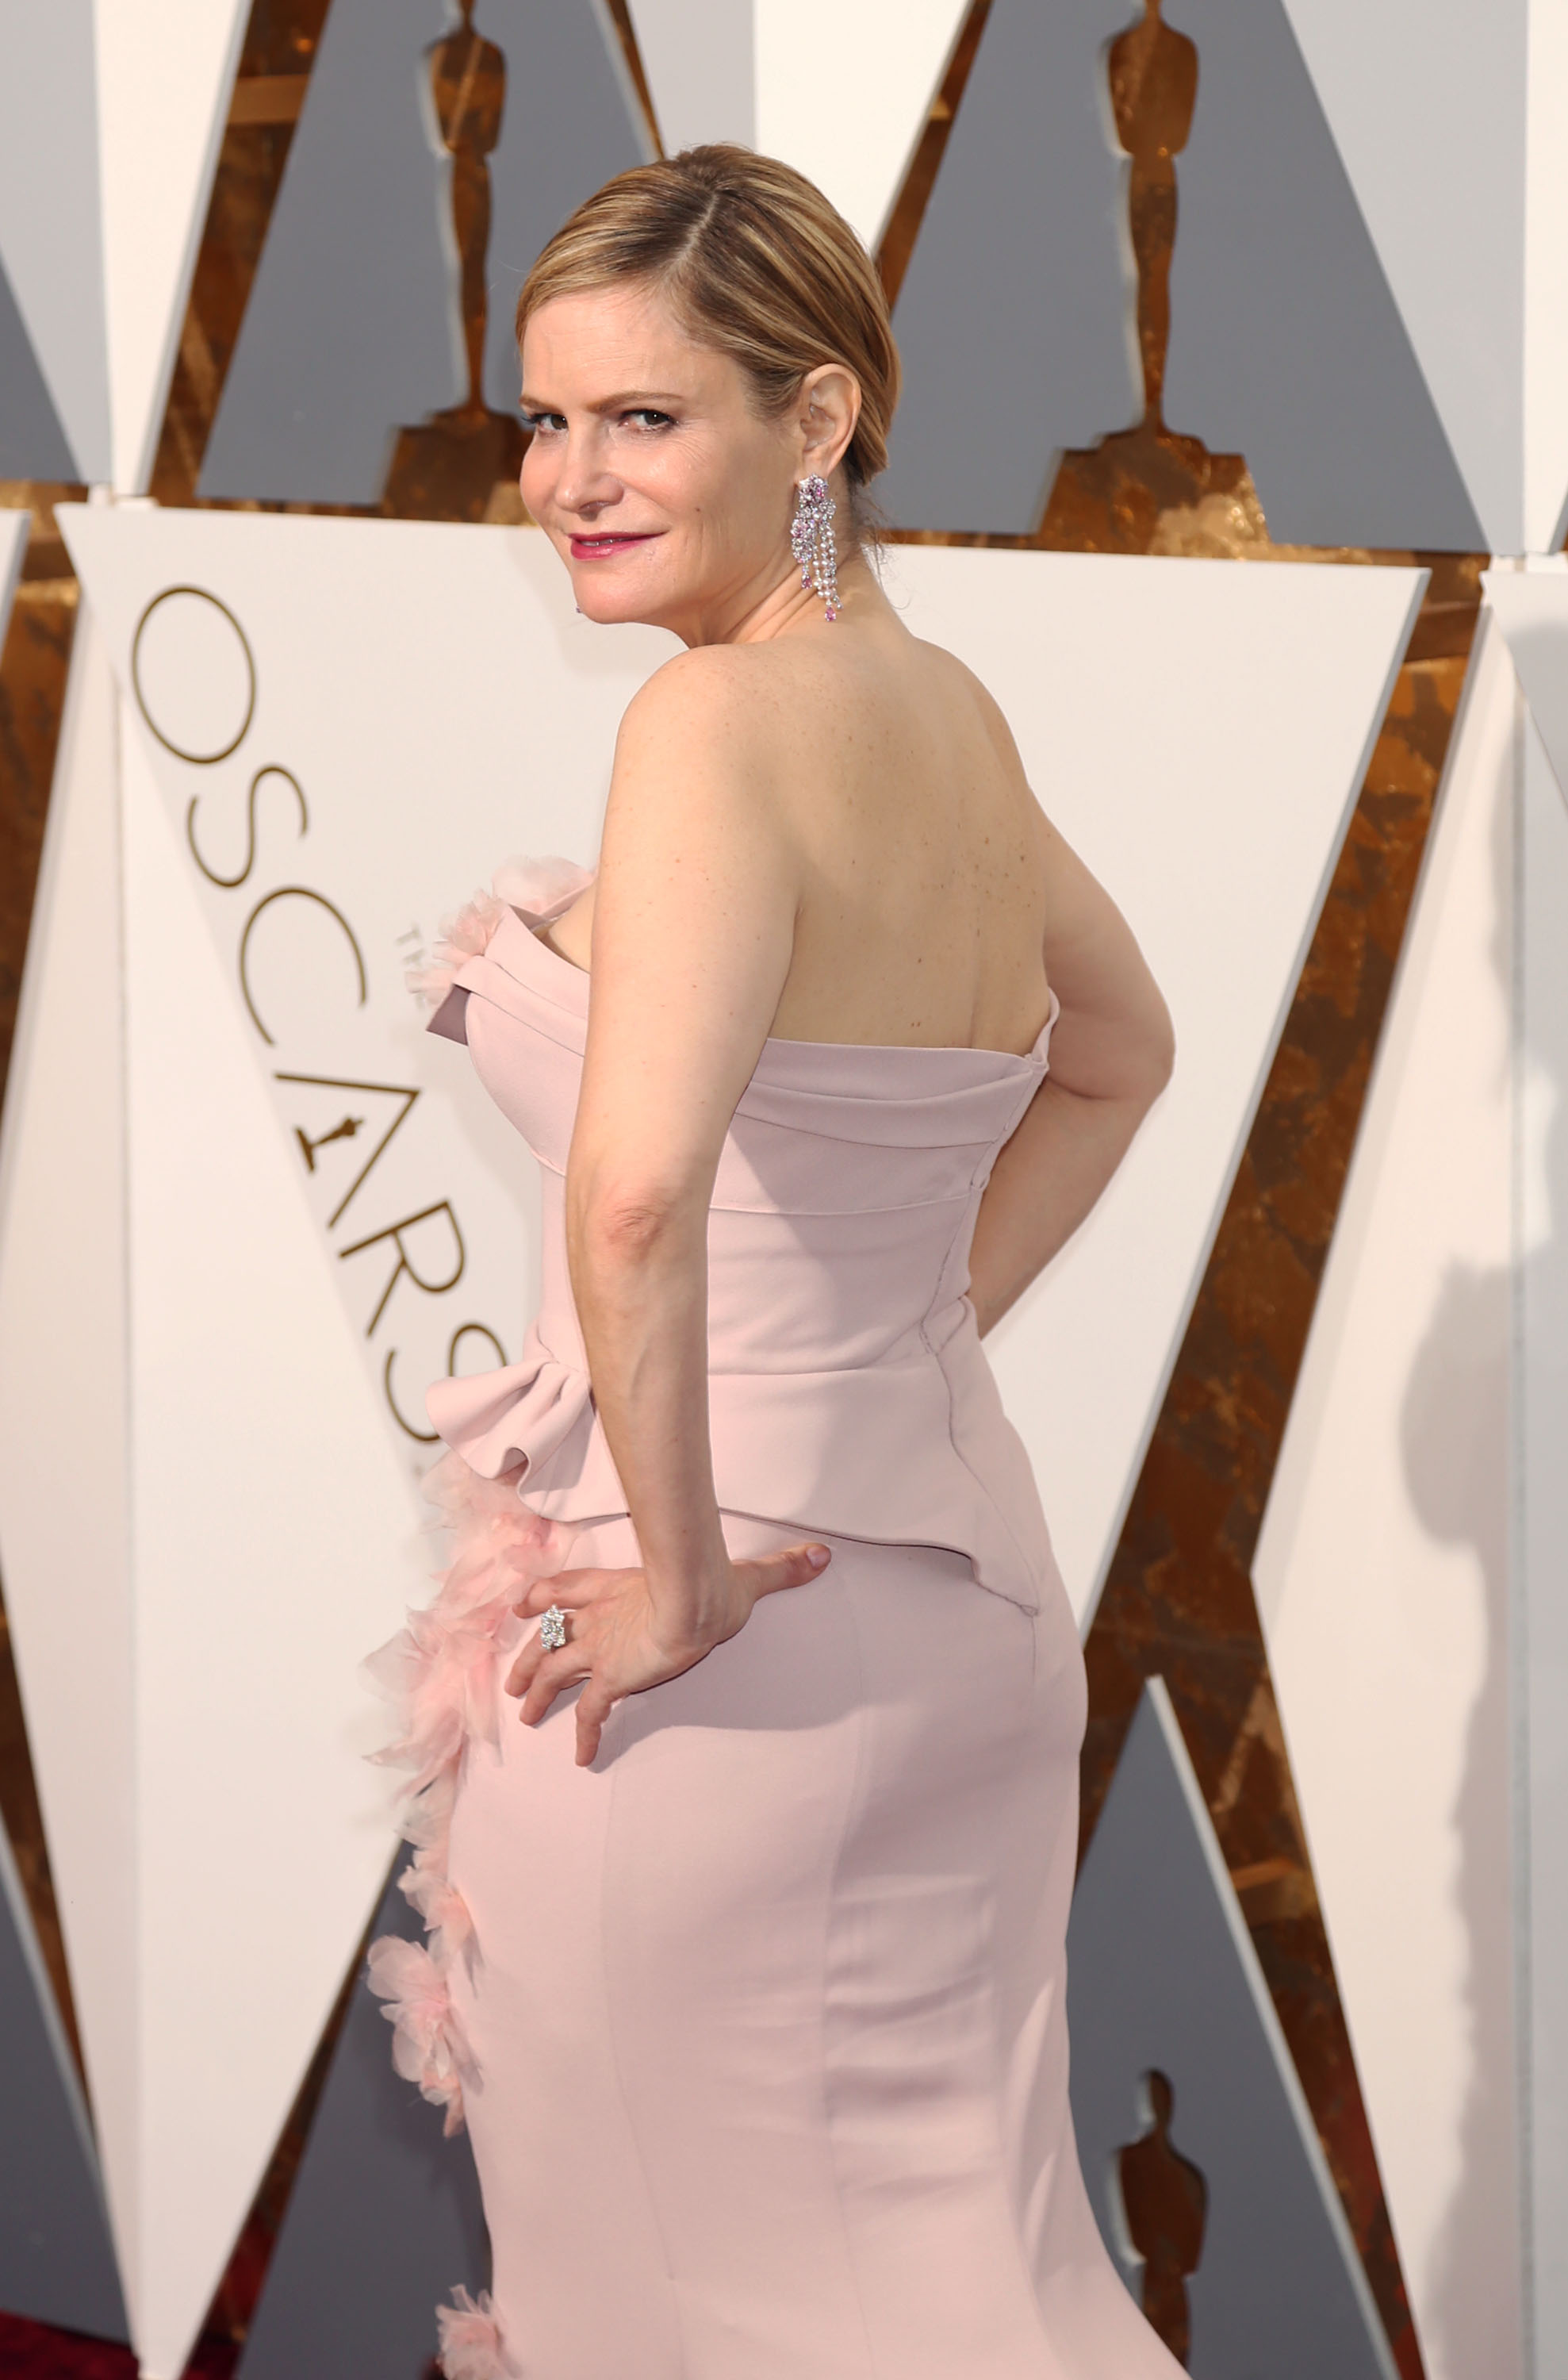 51983442 Celebrities arriving at the 88th Annual Academy Awards at the Hollywood & Highland Center in Hollywood, California on February 28, 2016. Celebrities arriving at the 88th Annual Academy Awards at the Hollywood & Highland Center in Hollywood, California on February 28, 2016. Pictured: Jennifer Jason Leigh FameFlynet, Inc - Beverly Hills, CA, USA - +1 (310) 505-9876